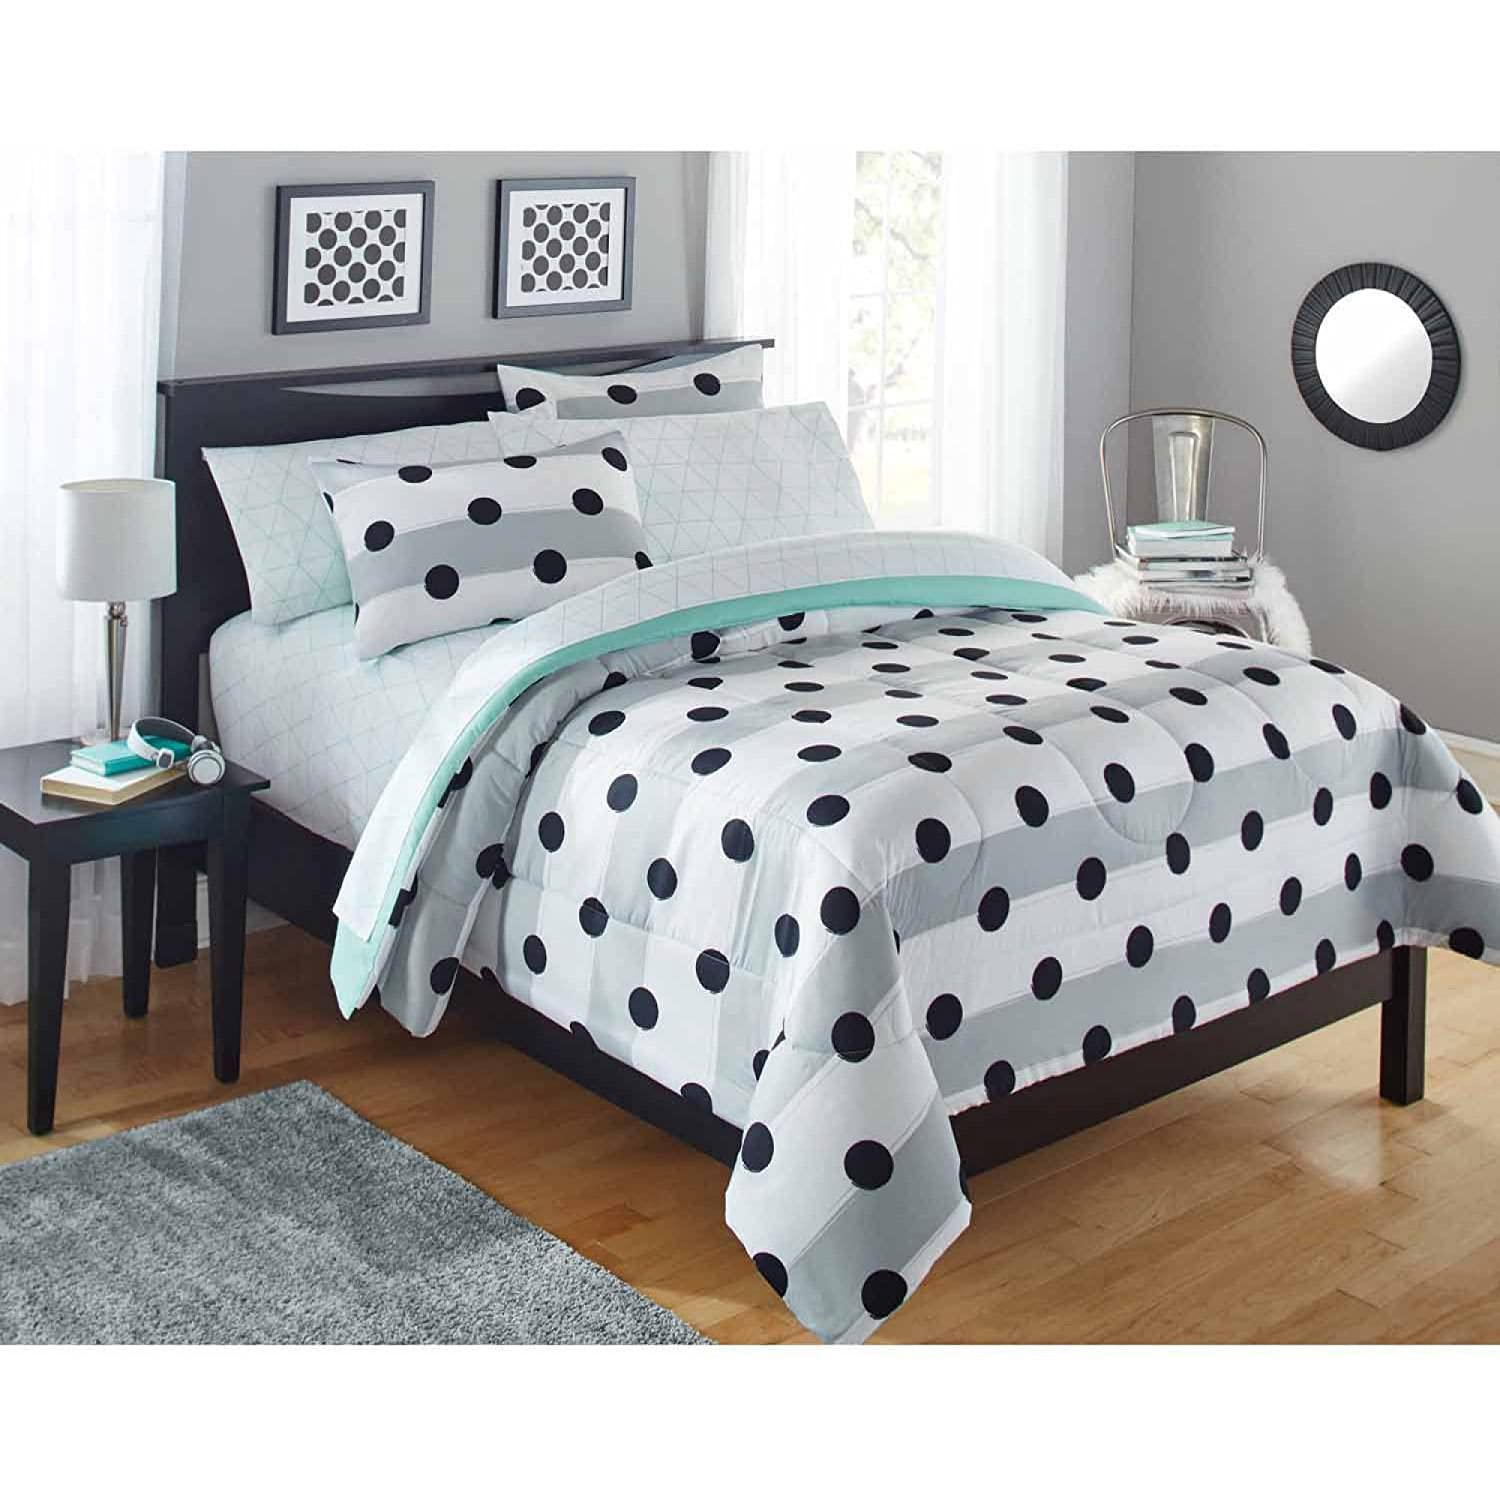 Mainstays Kids Black and White Polka Dots Bedding Twin Girls Comforter Set